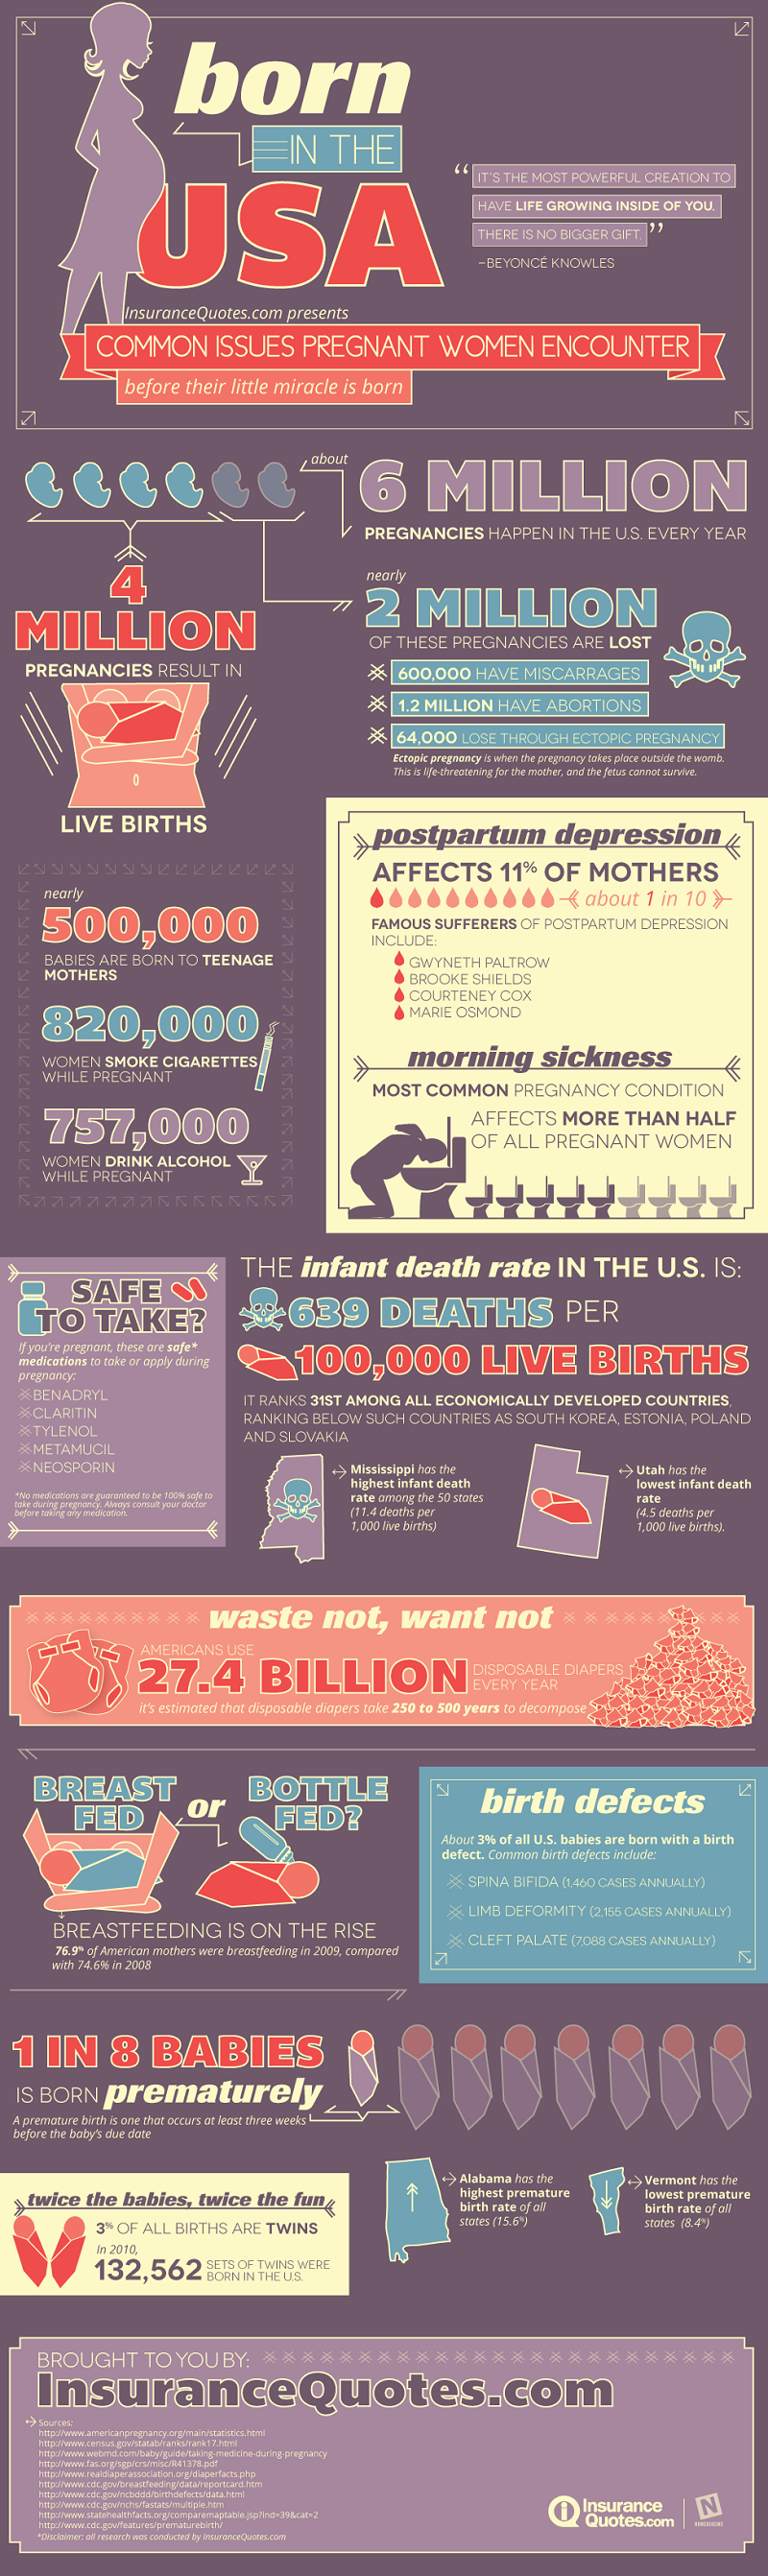 Pregnancy in the U.S. [Infographic] image Pregnancy in the US 800px